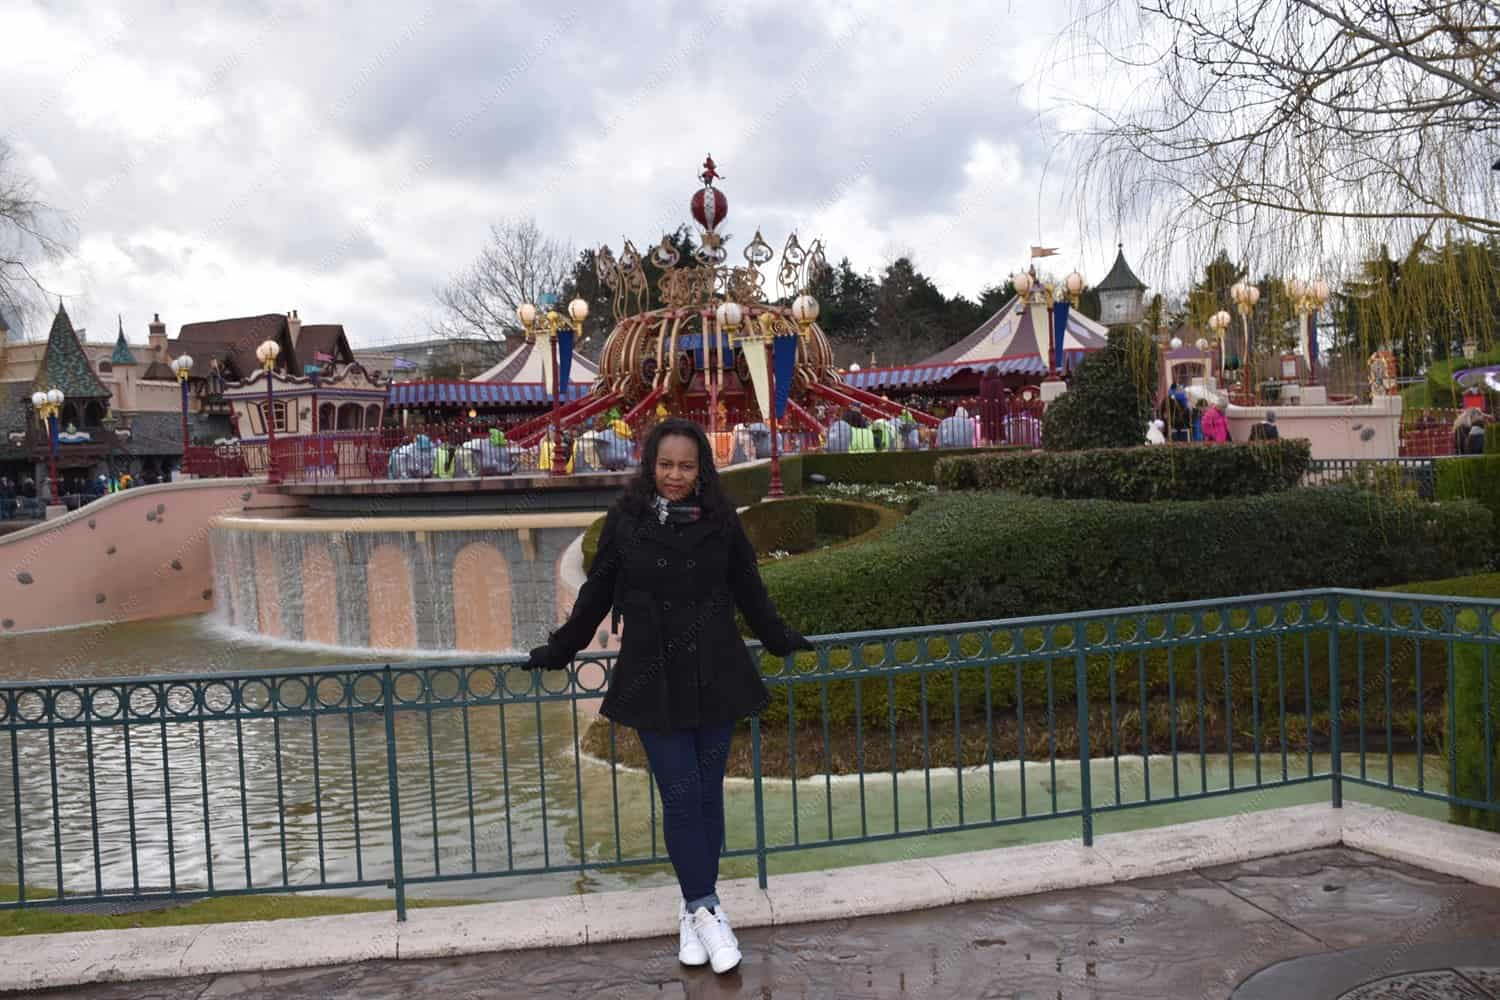 Having fun in the theme park